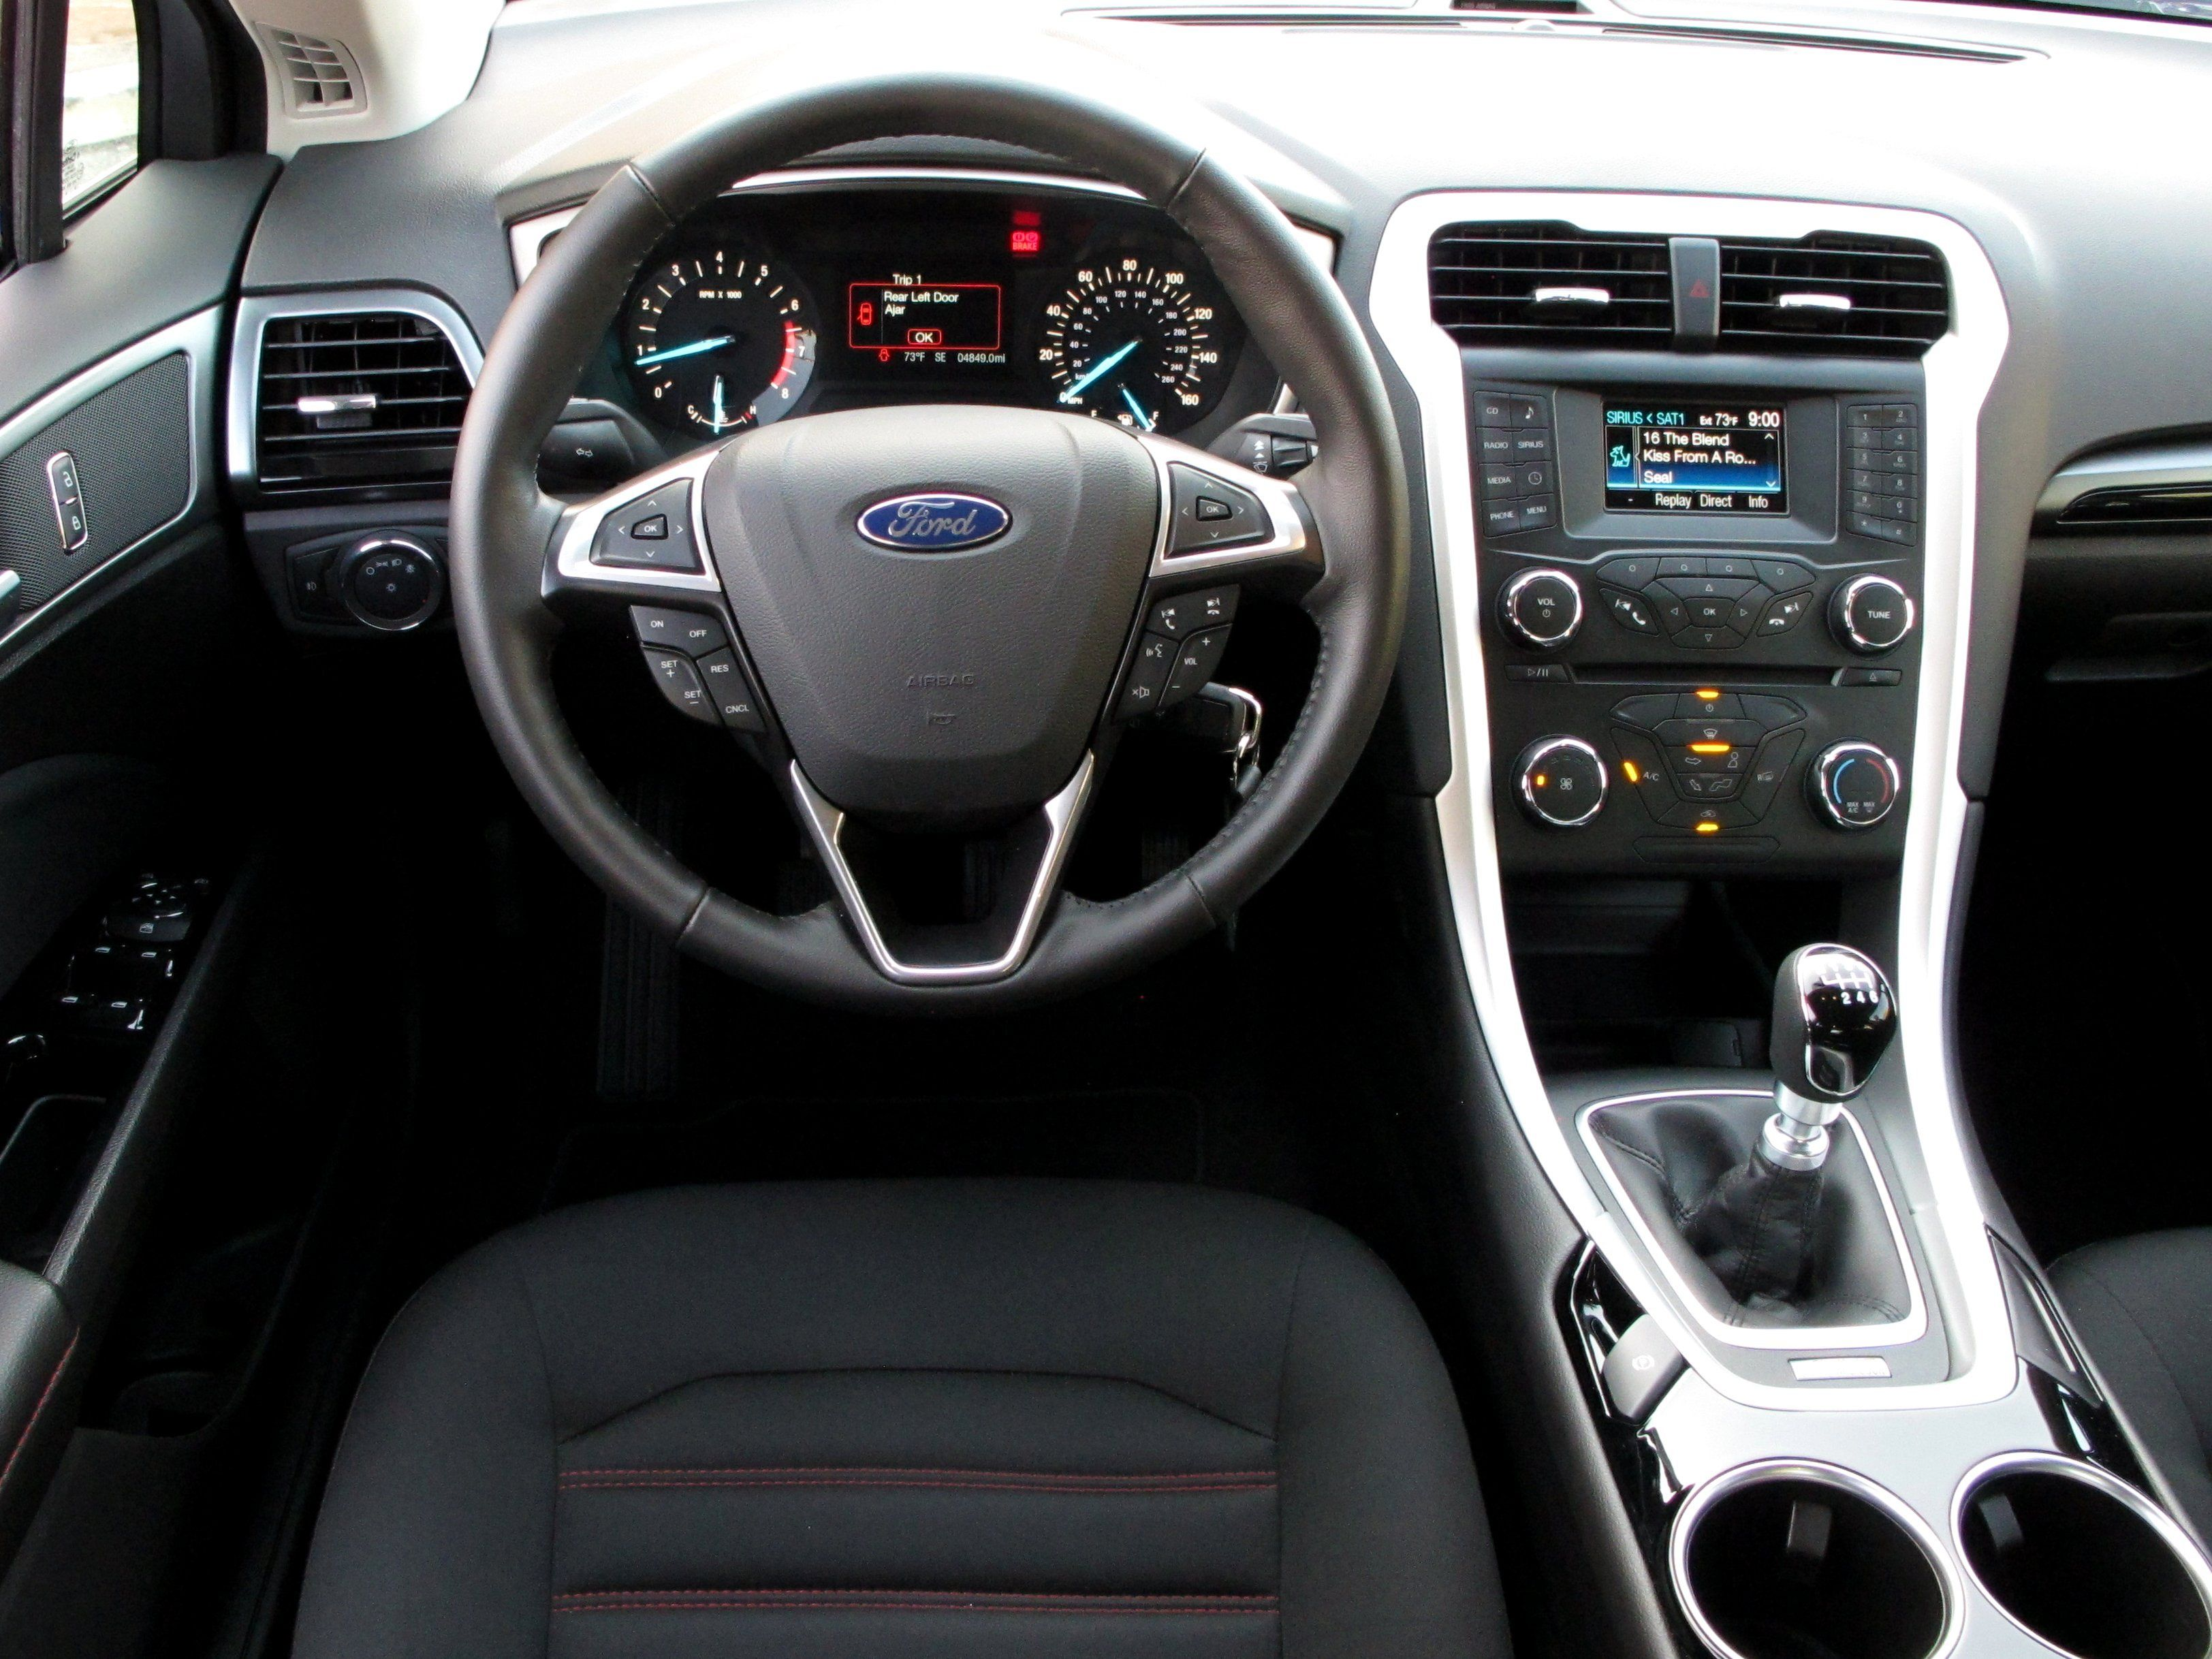 2013 Ford Fusion Interior Awesome Ideas